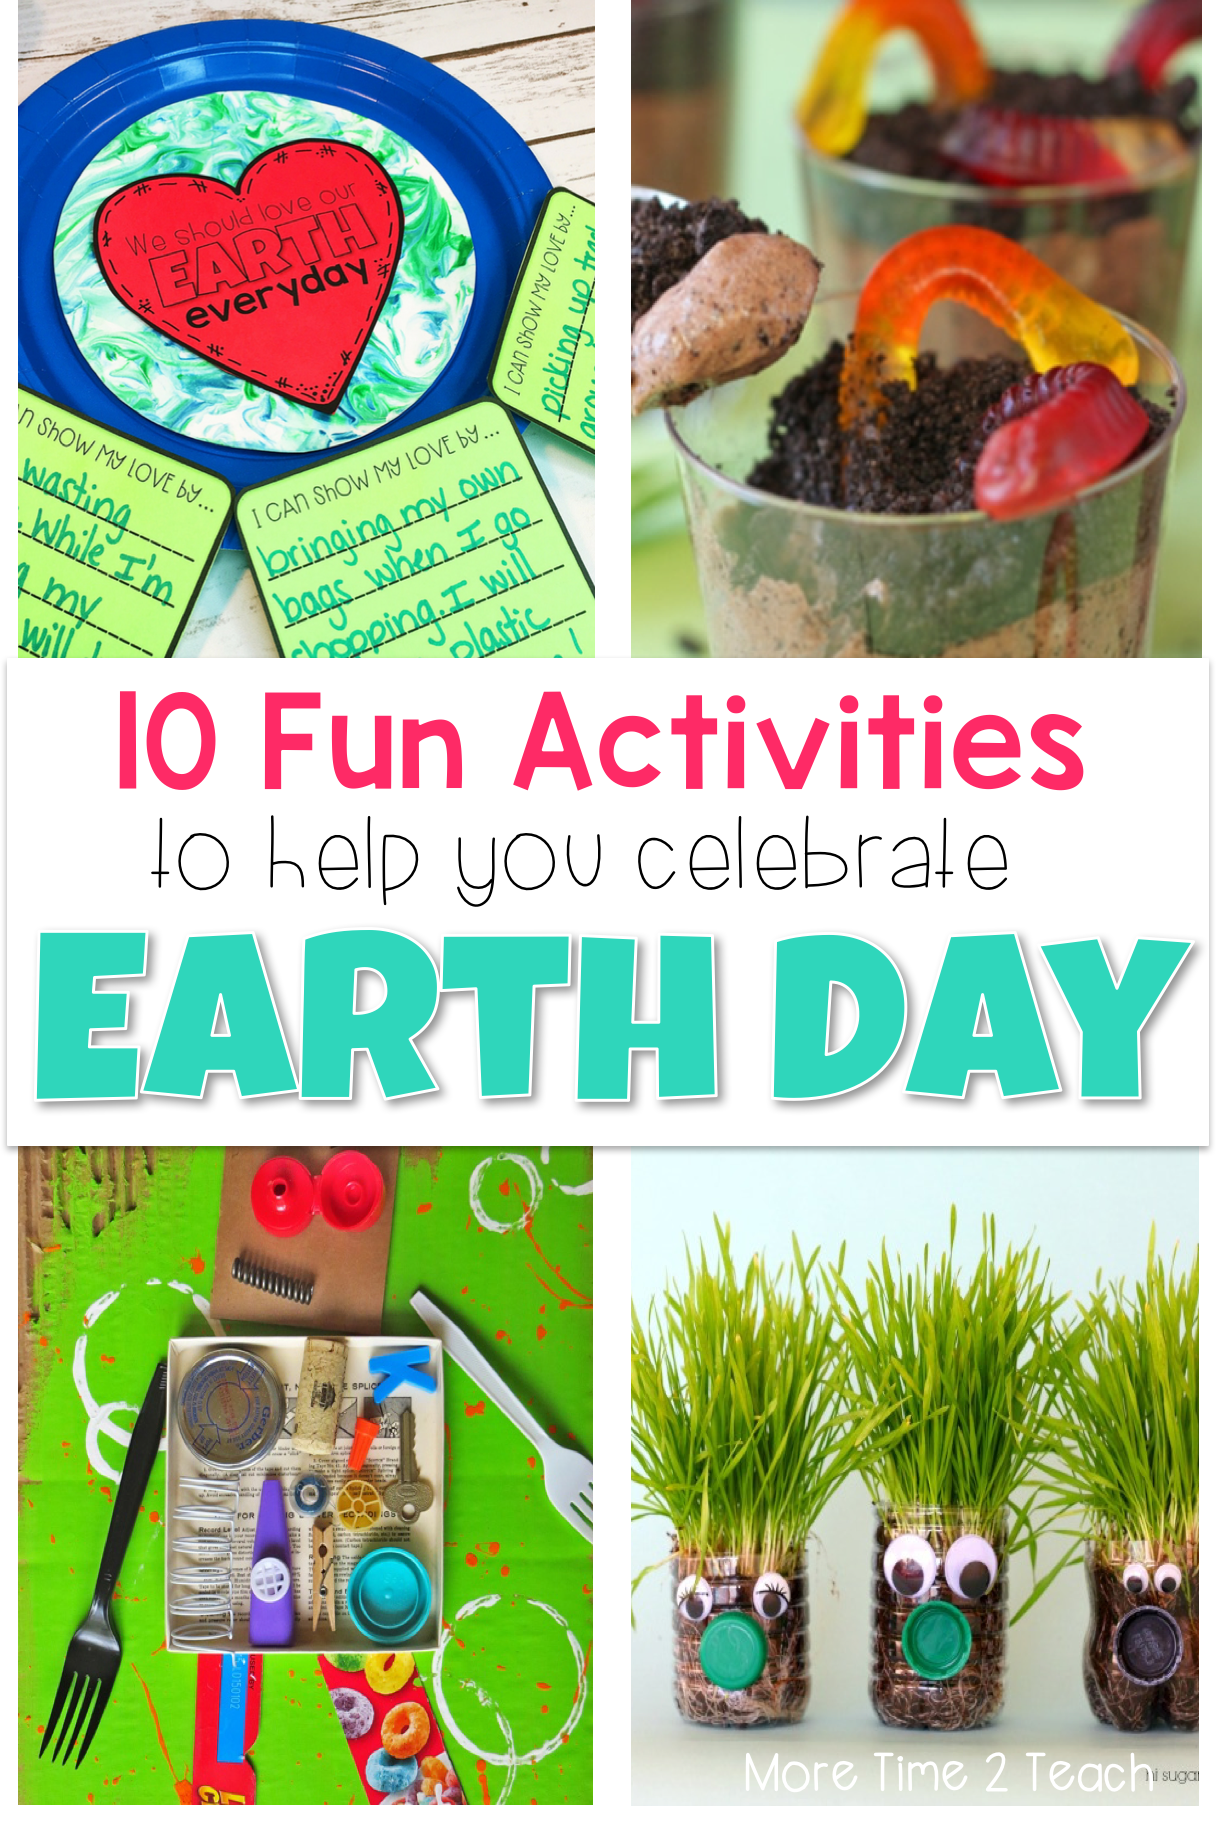 Classroom Ideas For Earth Day ~ Fun activities to celebrate earth day in the classroom